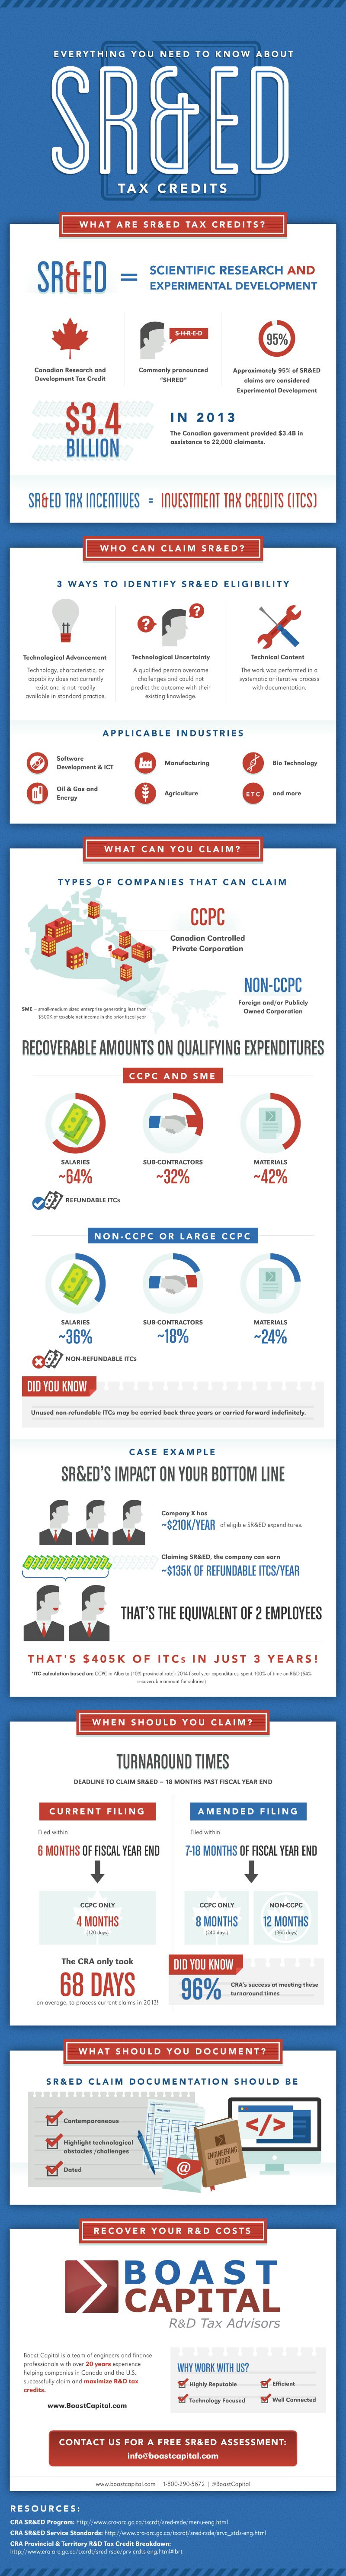 Updated Boast Capital SRED Infographic